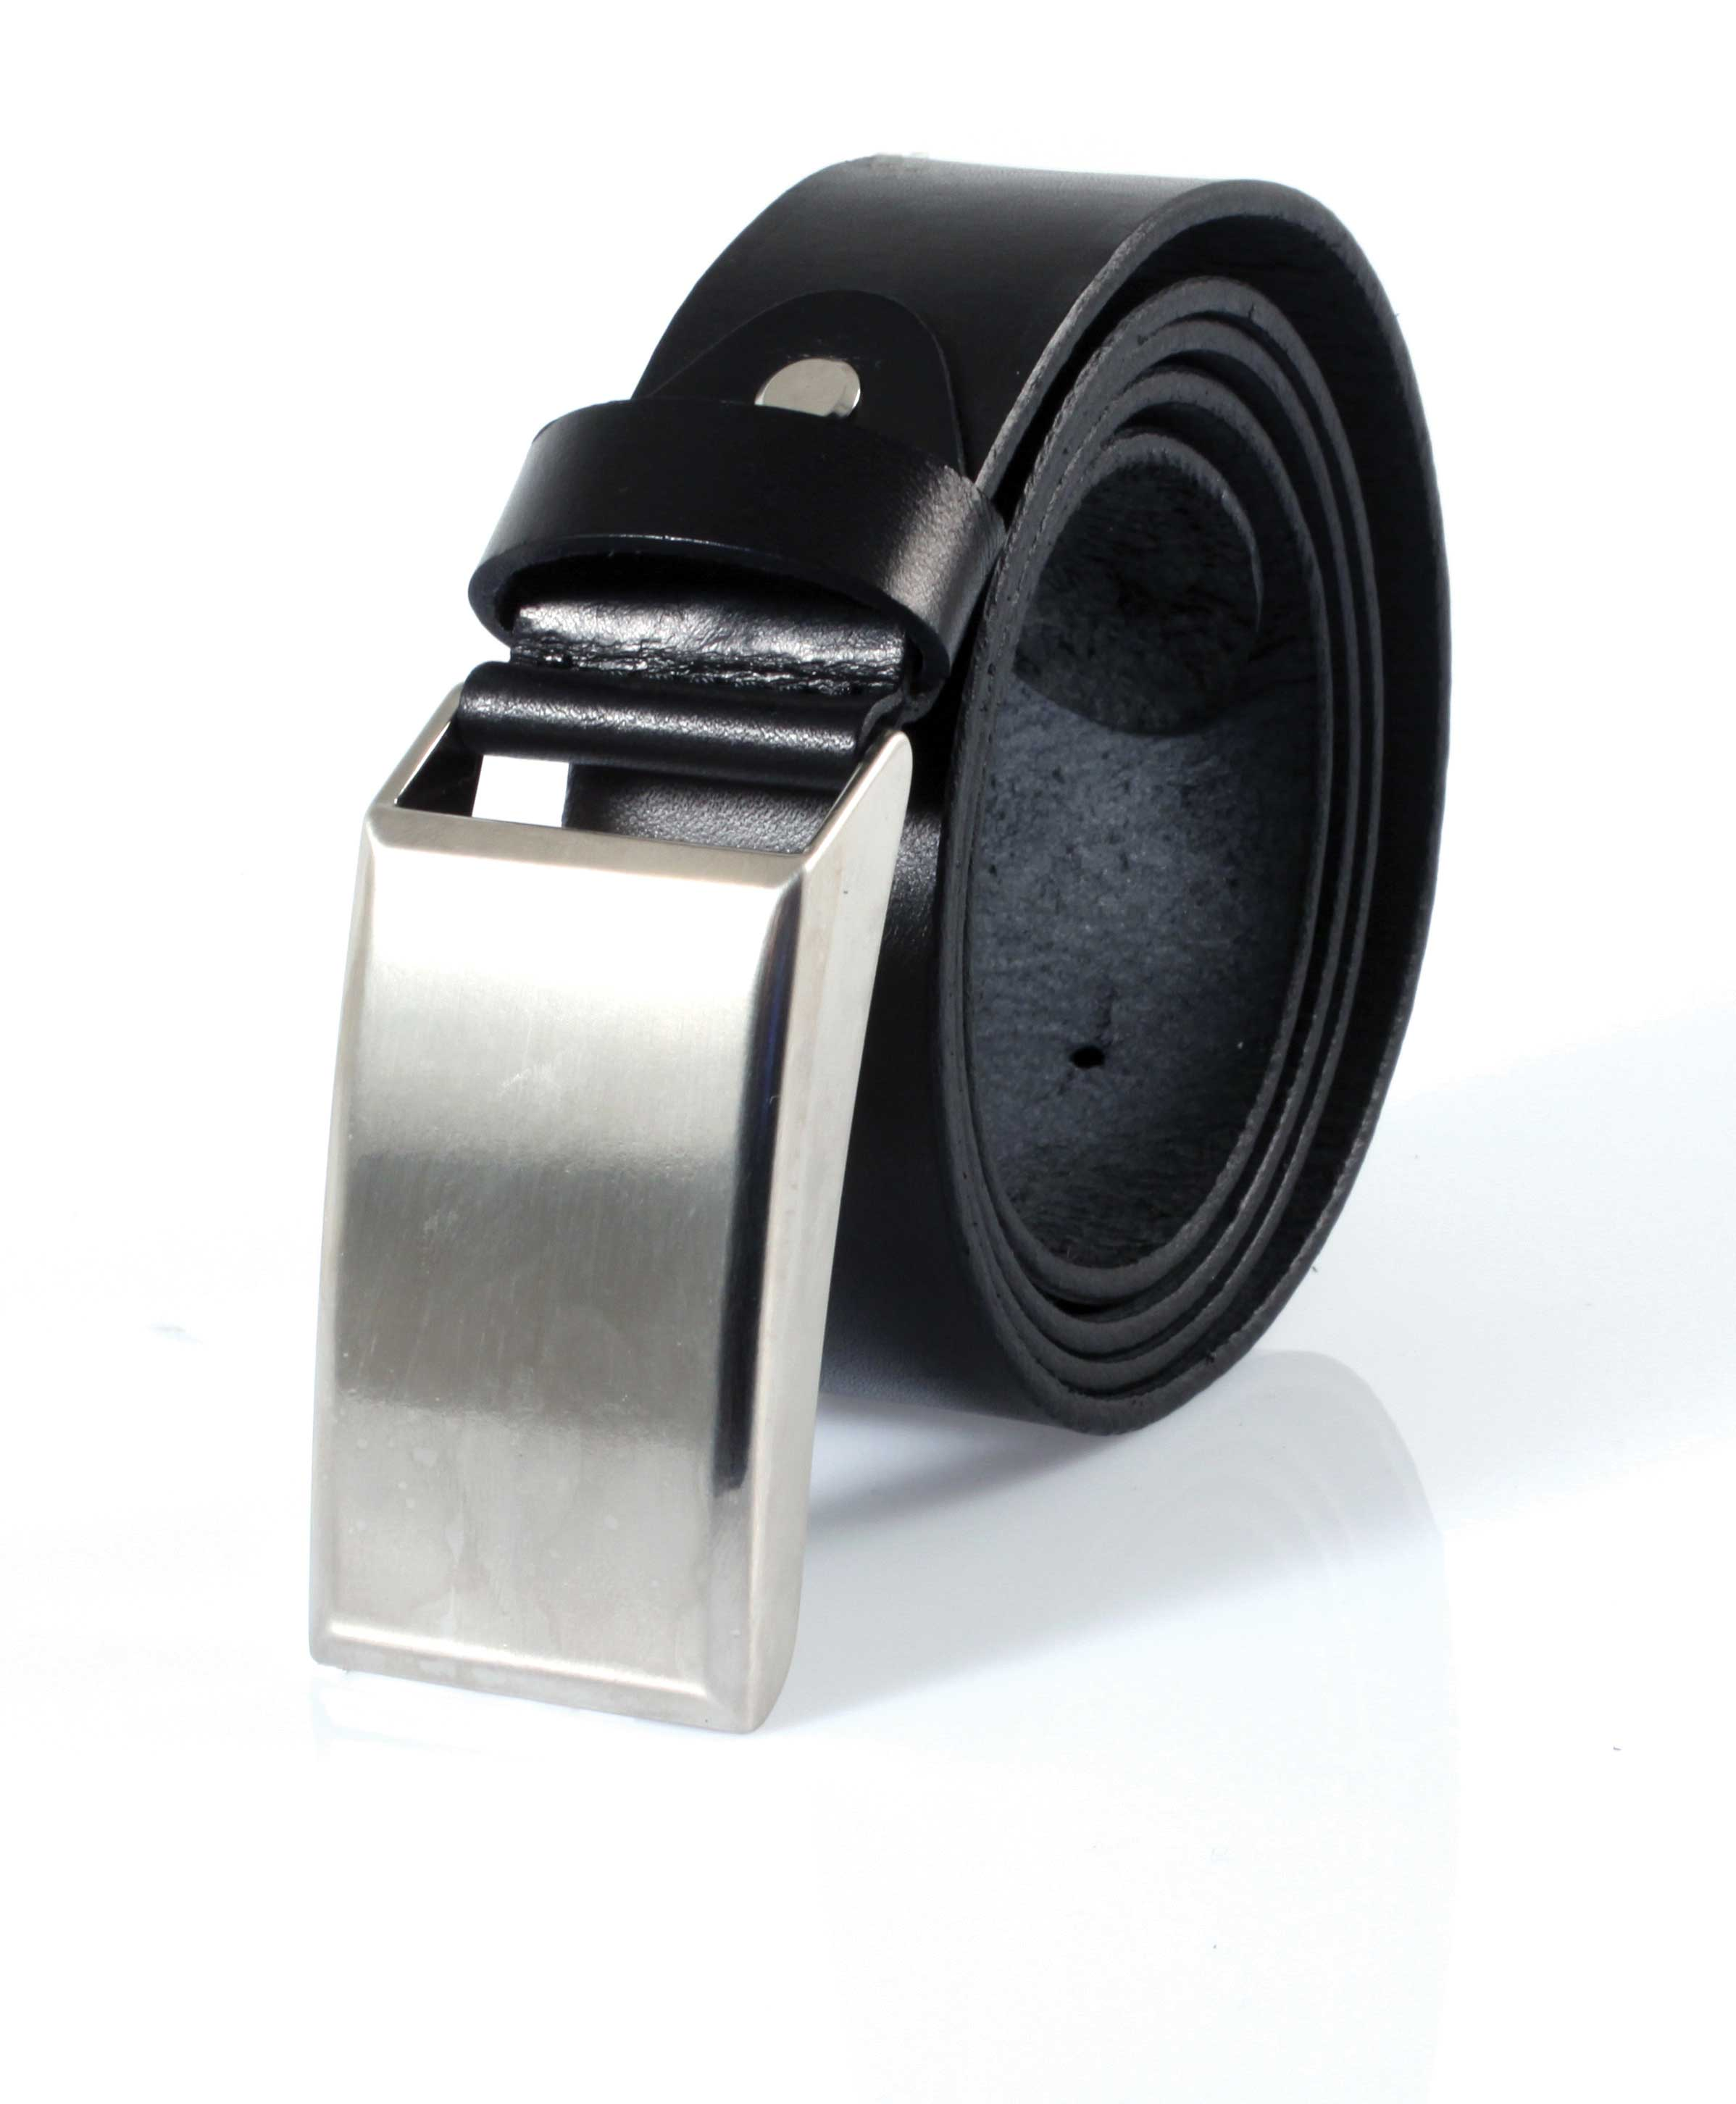 Fashion belt I (black)